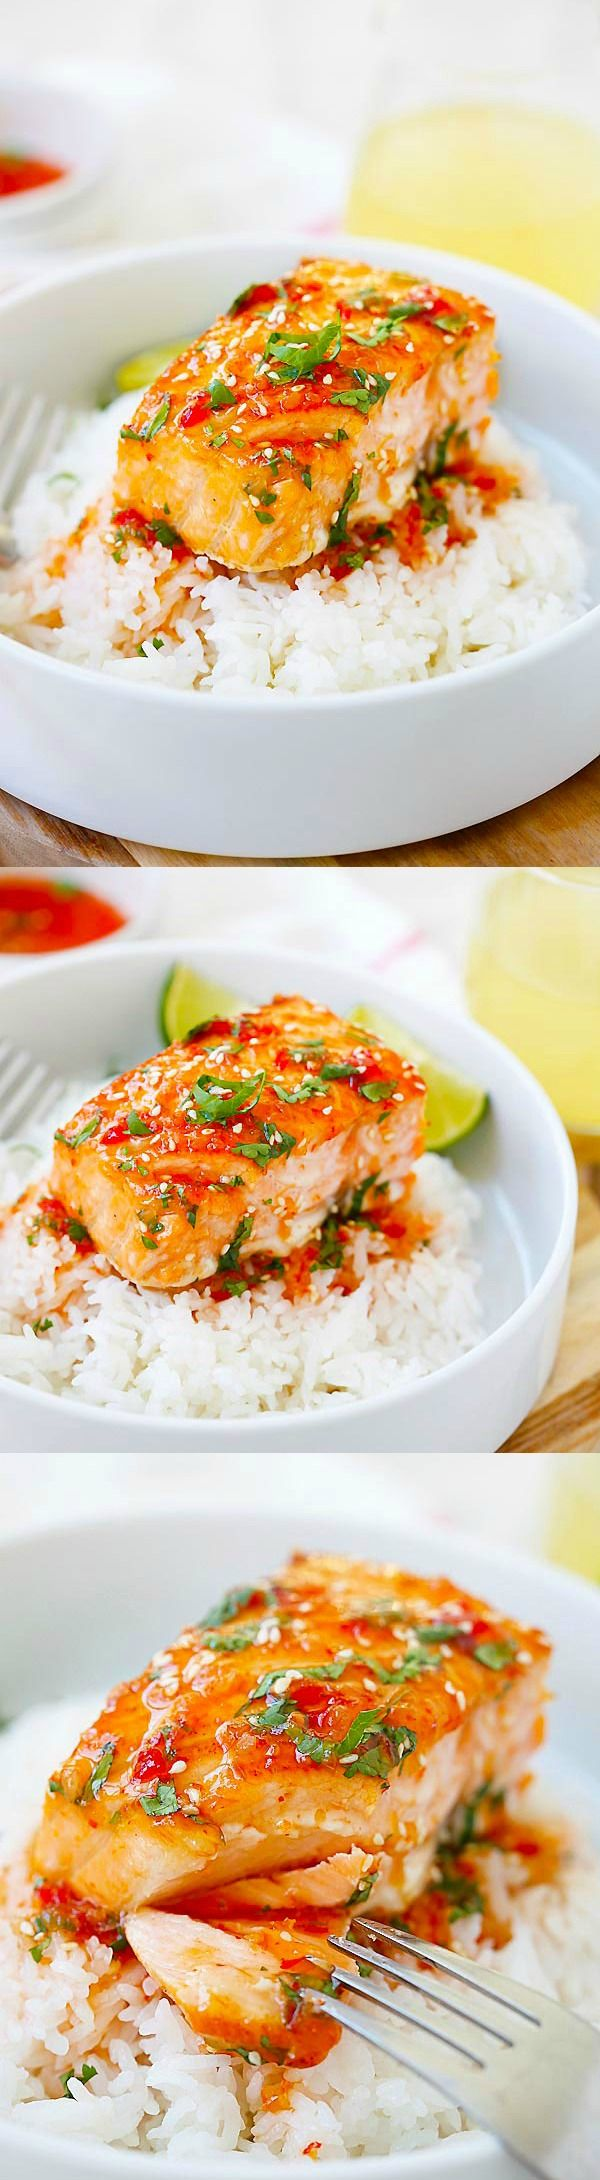 Sweet Chili Salmon – quick and easy salmon with Thai sweet chili sauce. The recipe takes only 15 mins on skillet or you can bake it.